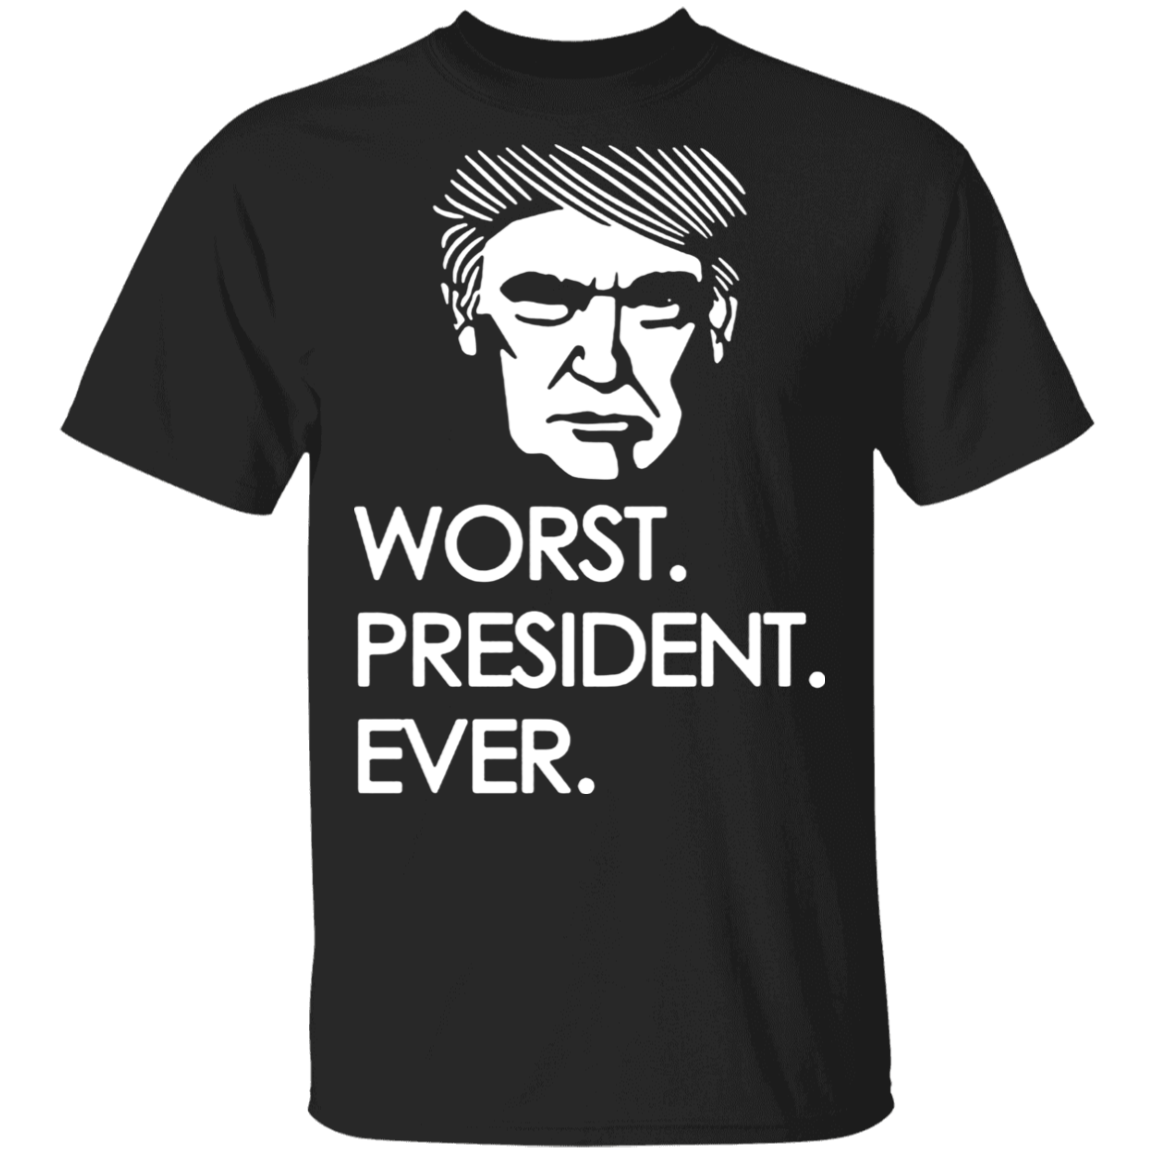 Trump Worst President Ever T-Shirt Worst Presidential Debates Anti Trump Clothes Biden Voters